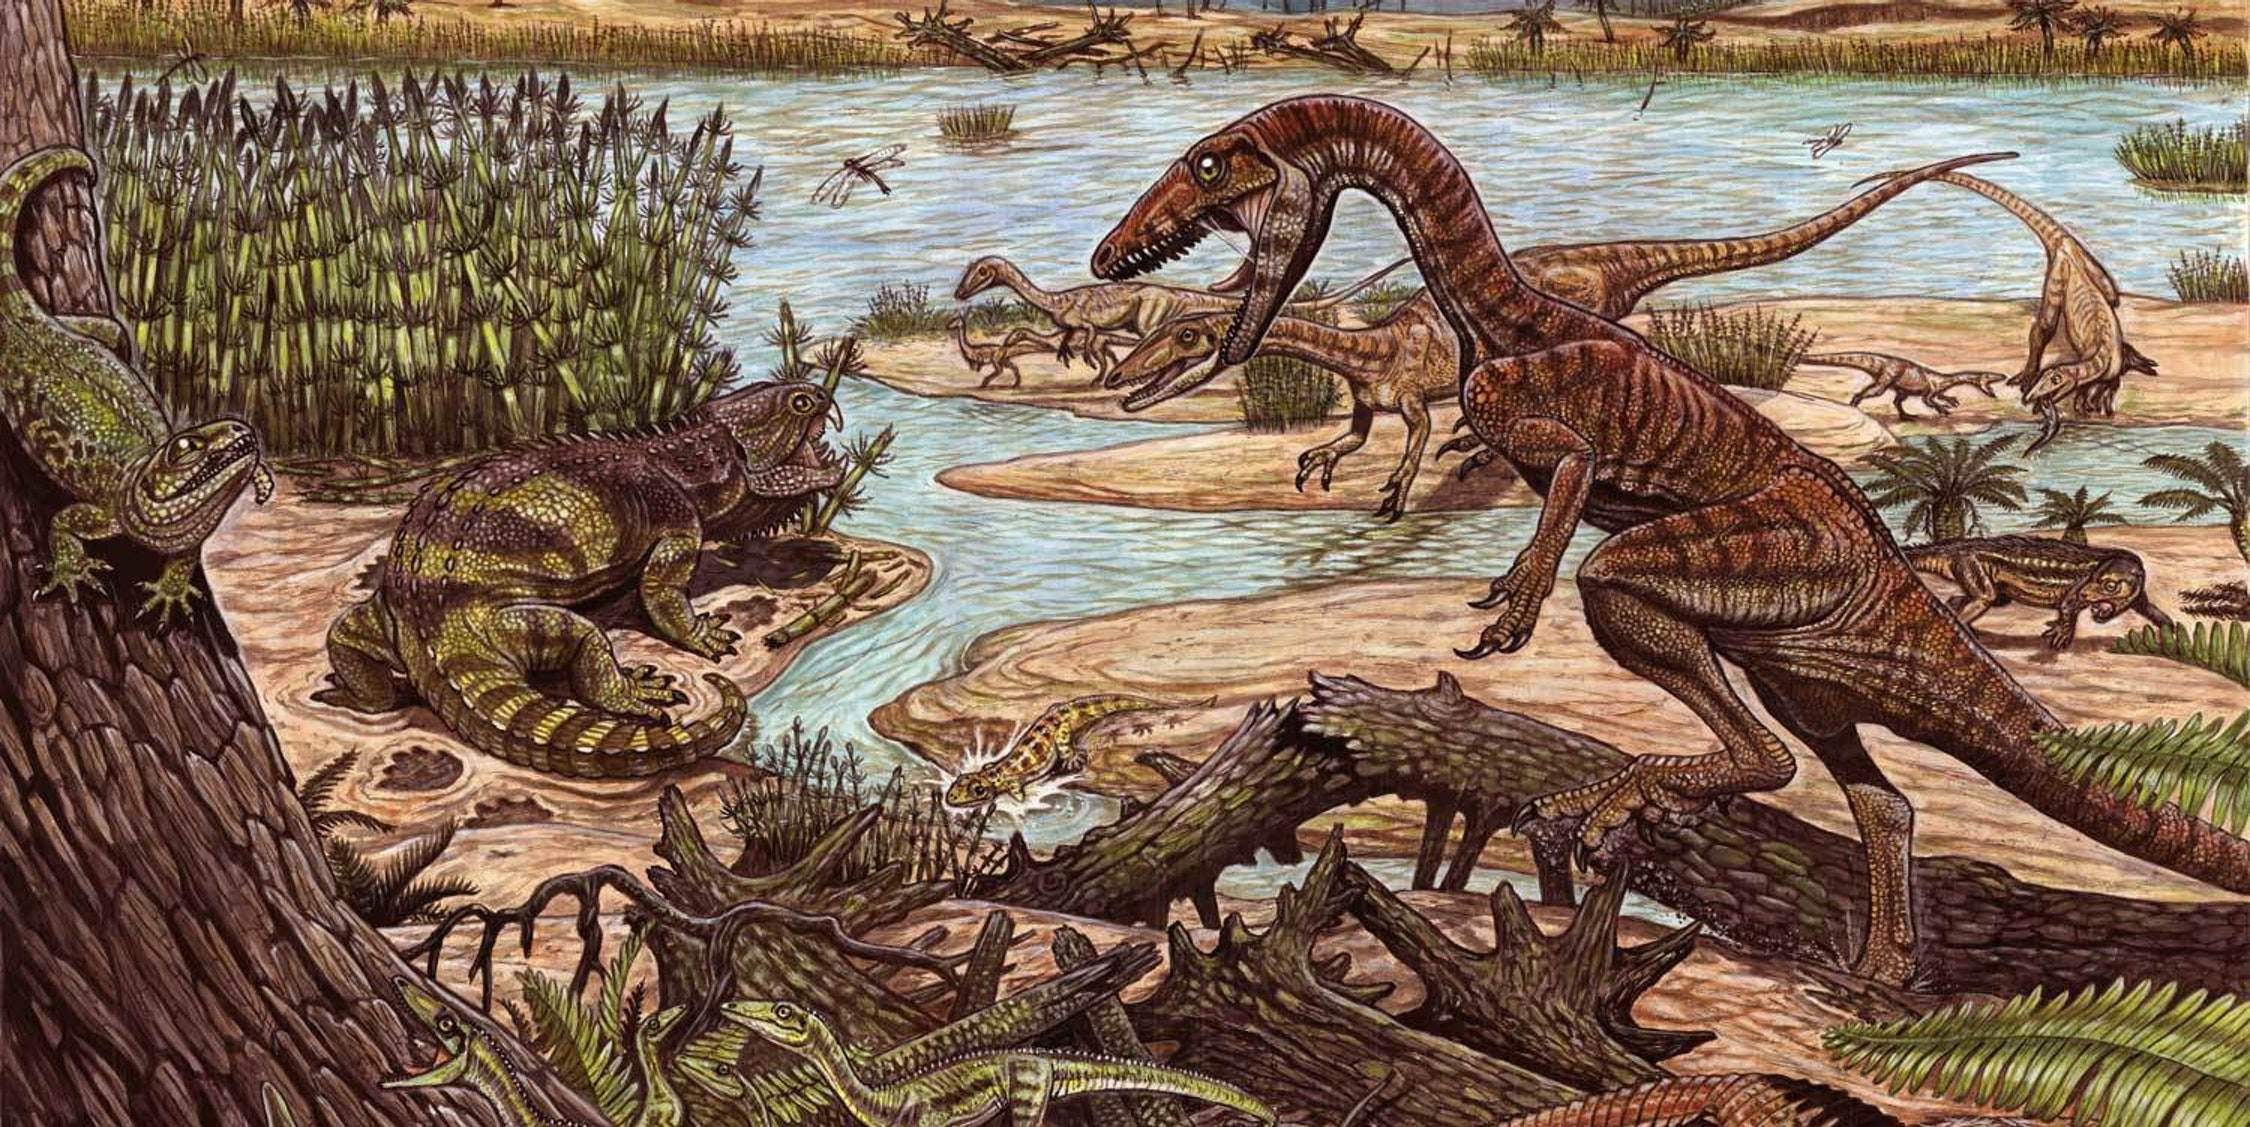 This illustration shows a group of 7 Ixalerpeton in the low left corner. Aetosaur in the low right corner. Sphenodont on the tree (upper left corner) and rhynchosaur on the ground next to it. One large Buriolestes (at first plane, upper right corner) and 6 behind. Small rauisuchian right to the large Buriolestes. Small amphibian (yellow) in the center of the image.